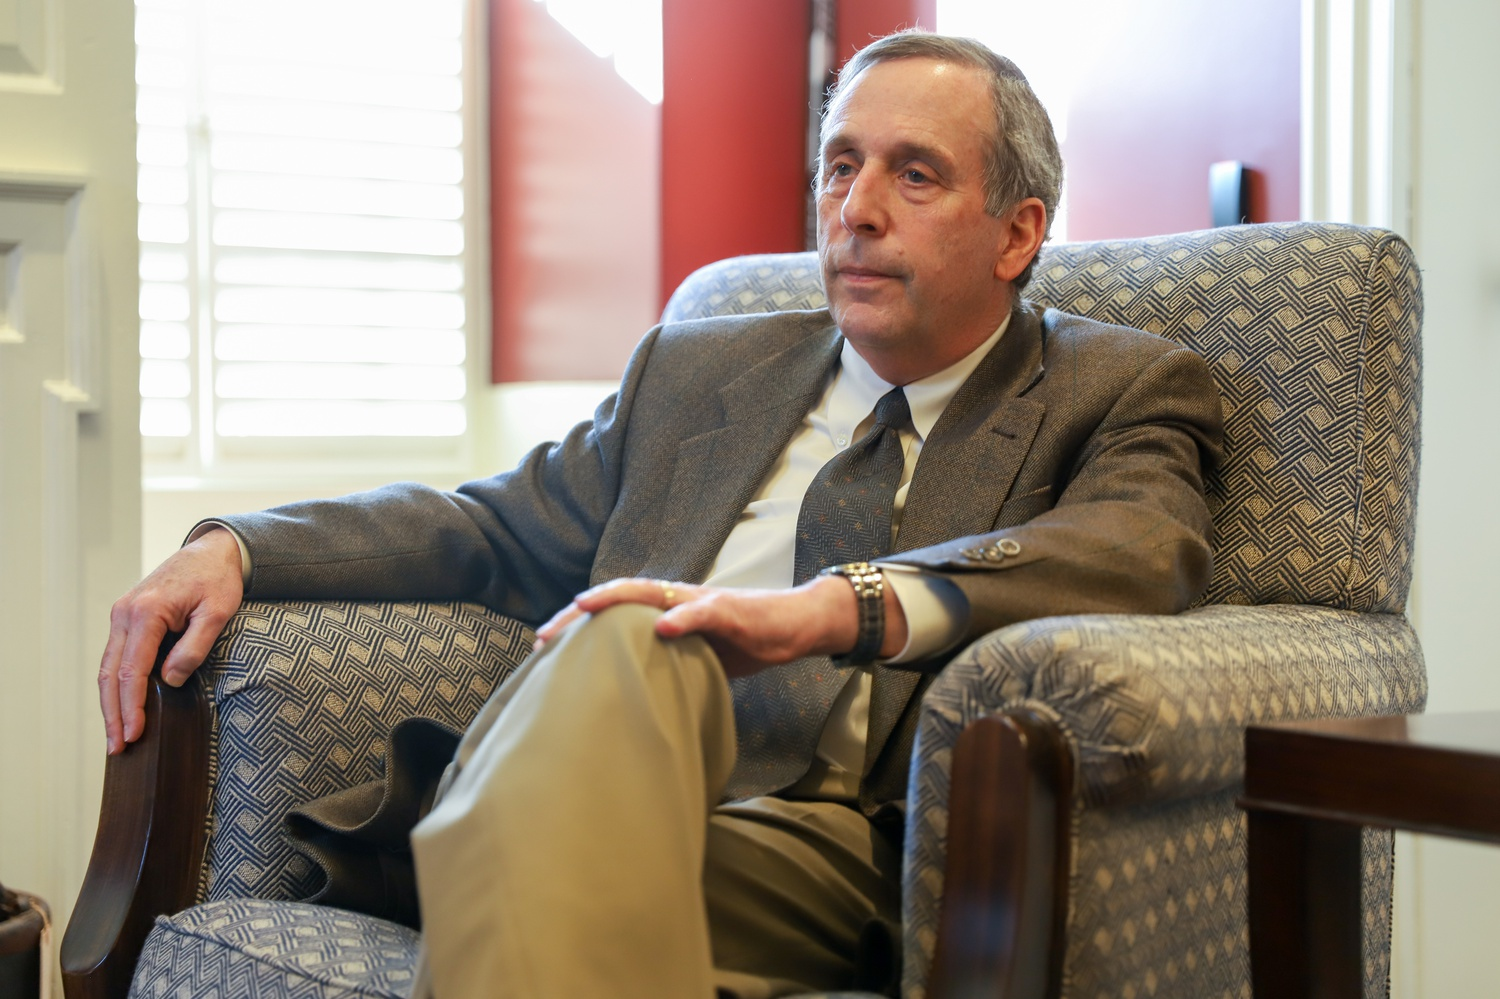 University President Lawrence S. Bacow, pictured here in early March, said in an interview Monday that Harvard is considering multiple scenarios for what its fall semester might look like.